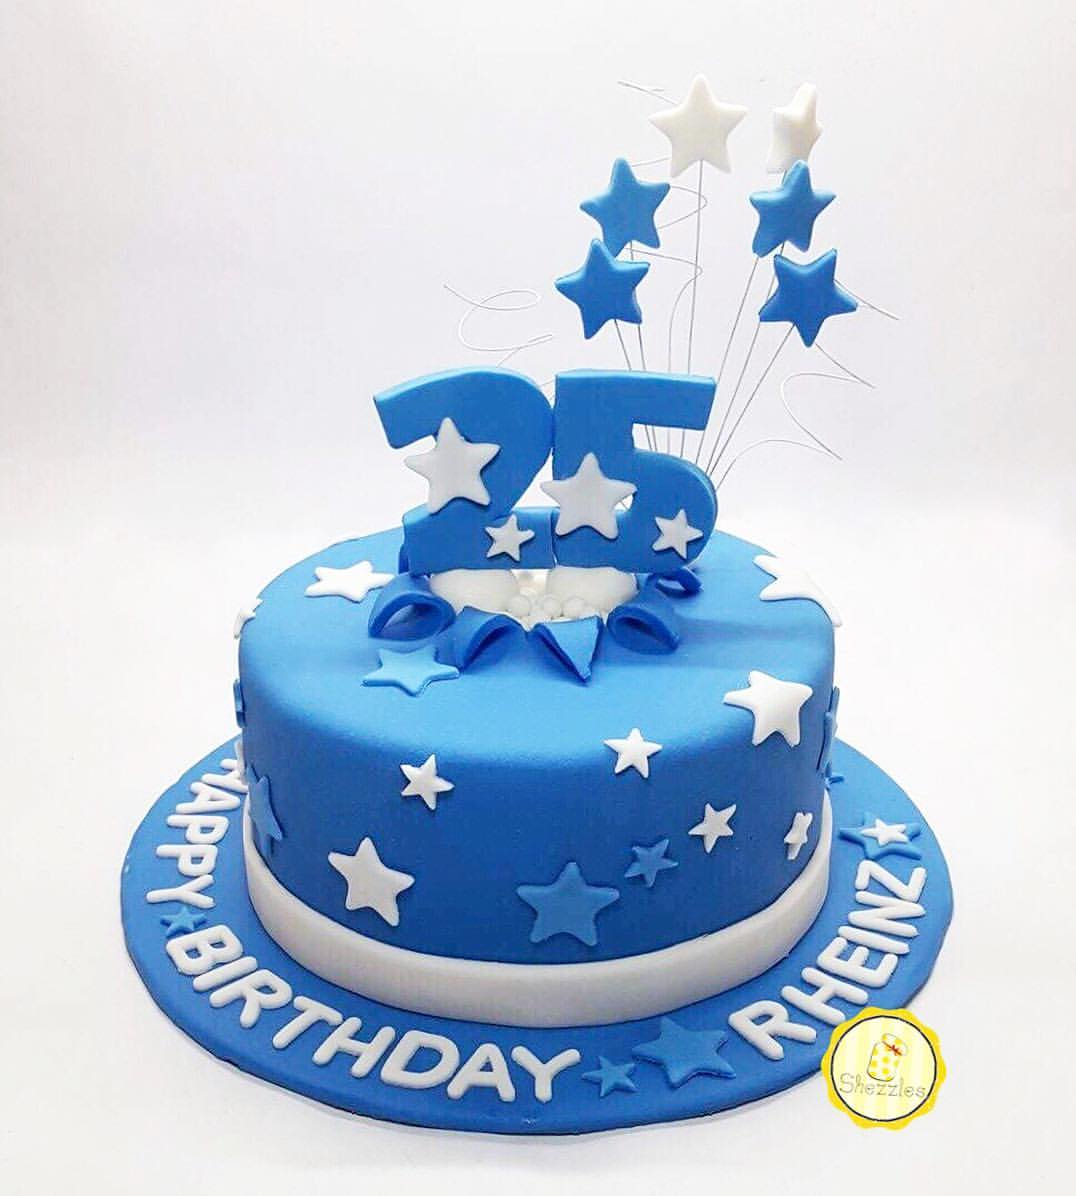 Awe Inspiring Shezzles Cakes And Pastries Rheinzs 25Th Birthday Cake Funny Birthday Cards Online Alyptdamsfinfo